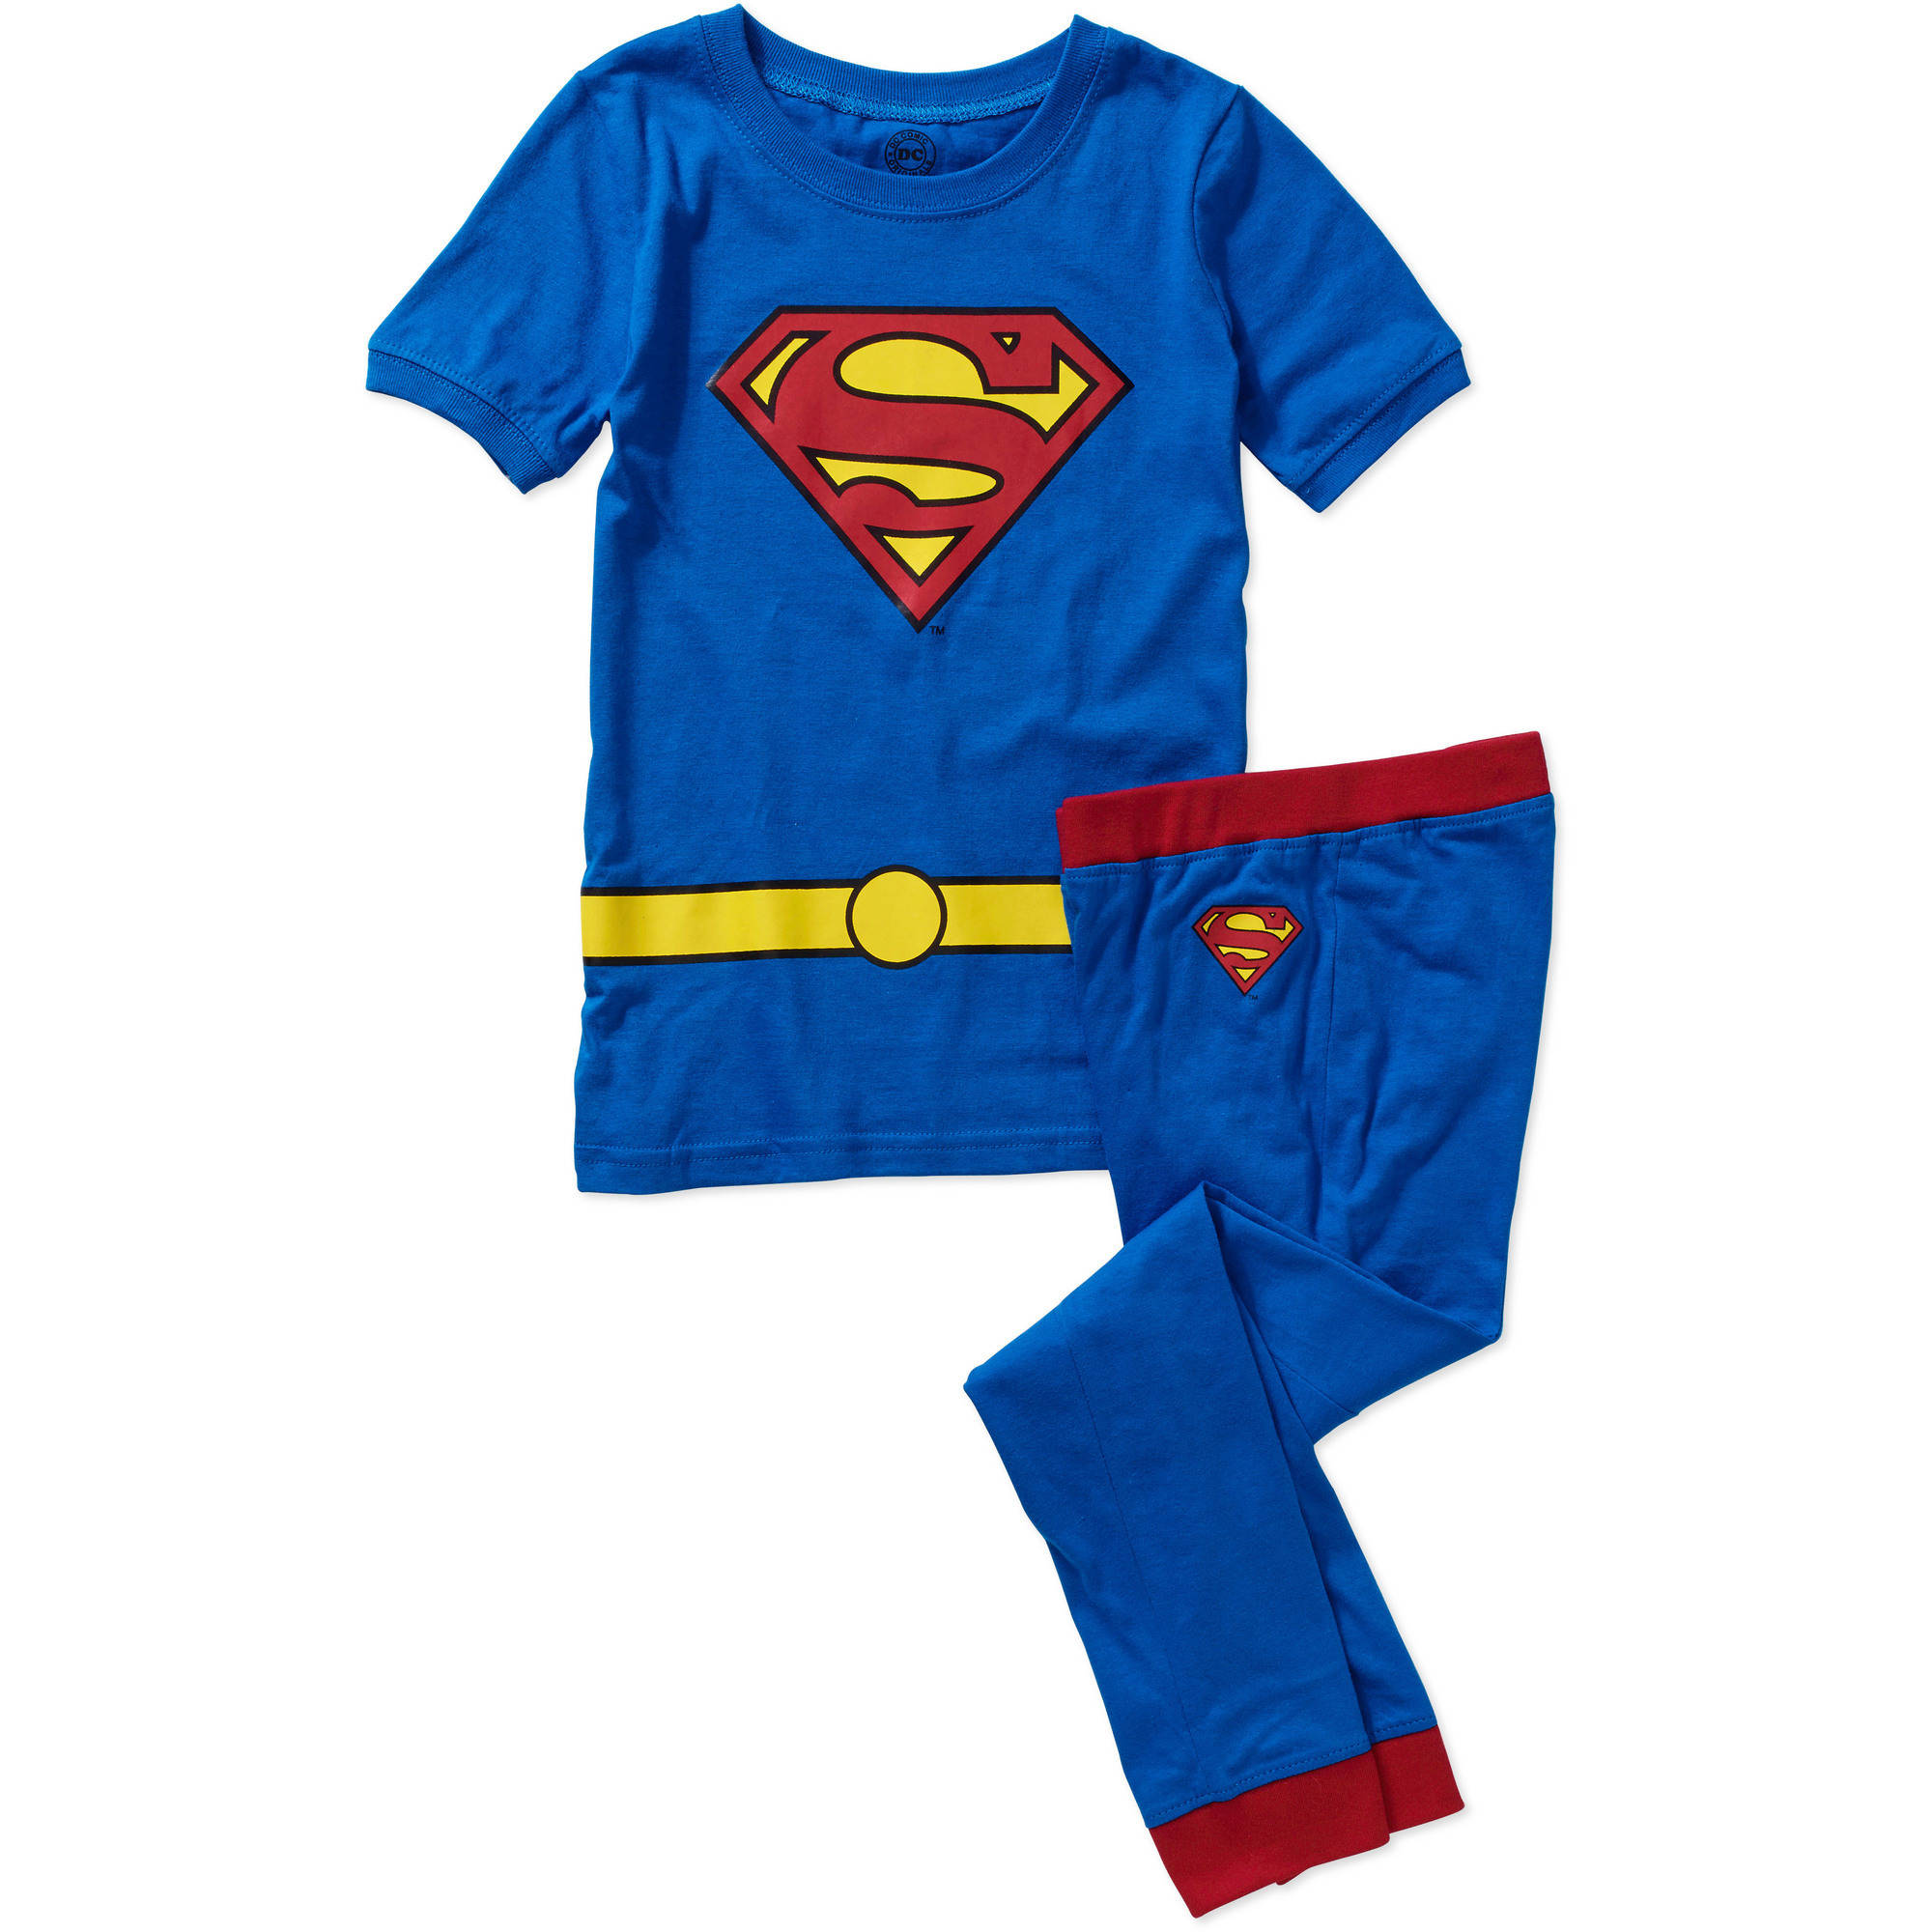 DC Comics Superman Tight Fit Costume Boys' Sleep Set